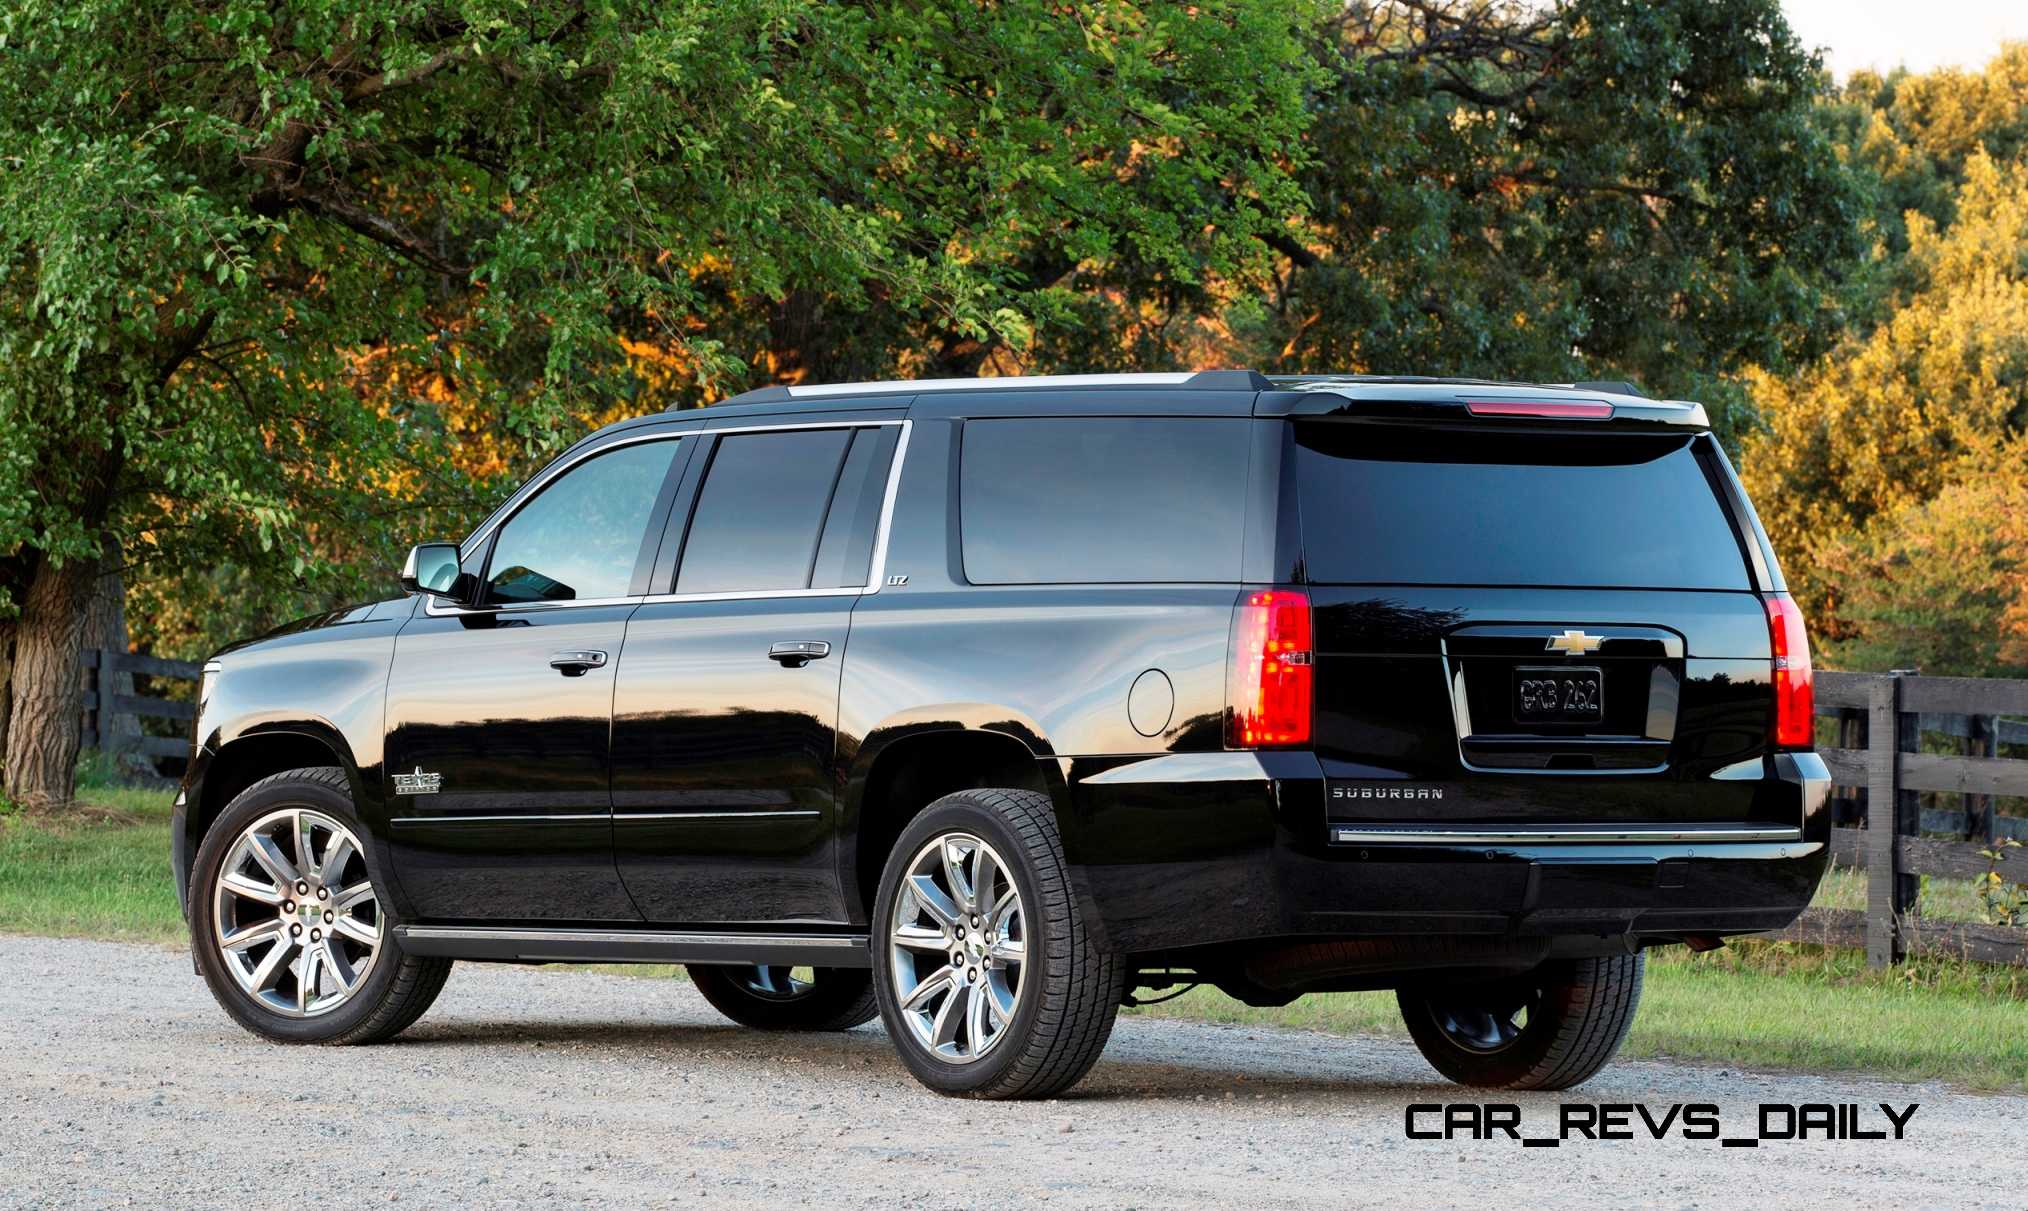 Police Cars For Sale >> Chevy Introduces Suburban and Tahoe Texas Editions to Complement Silverado UT Special